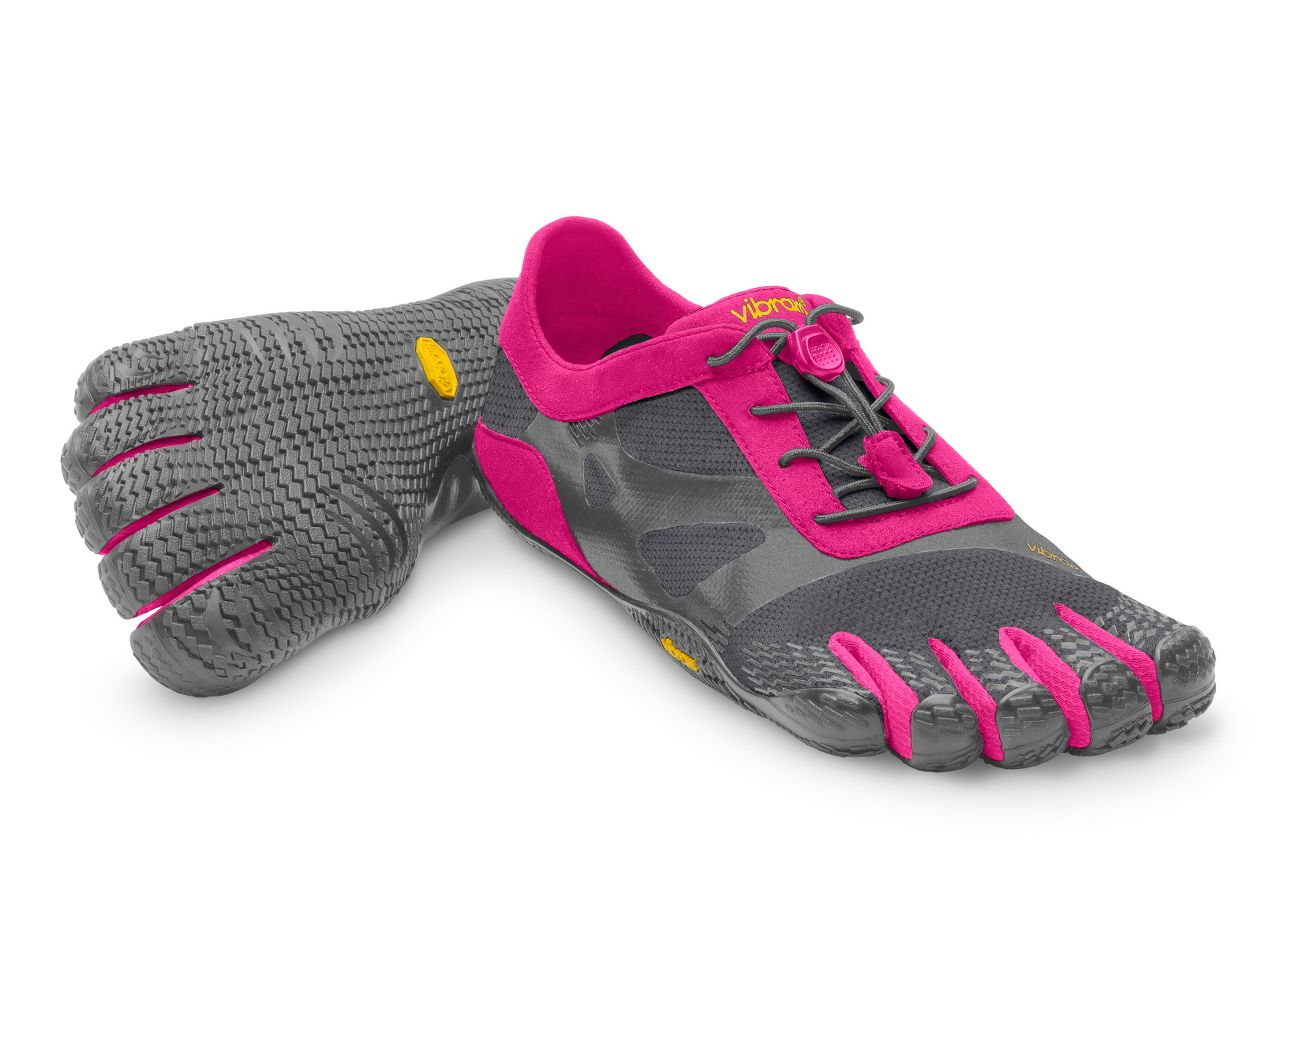 buy online cad2a 13fe6 ... pink 16w0703  womens vibram fivefingers kso evo running shoe at road  runner sports ...